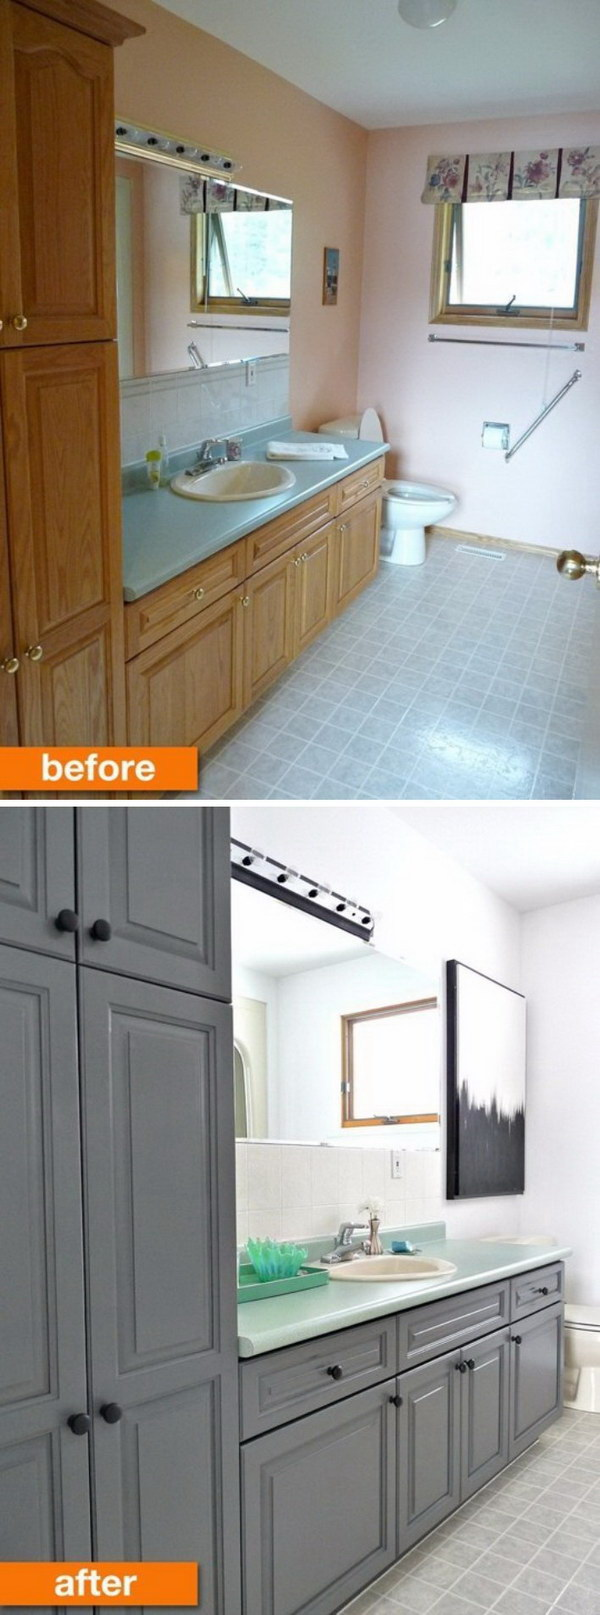 bathroom make over ideas before and after makeovers 20 most beautiful bathroom remodeling ideas noted list 9623